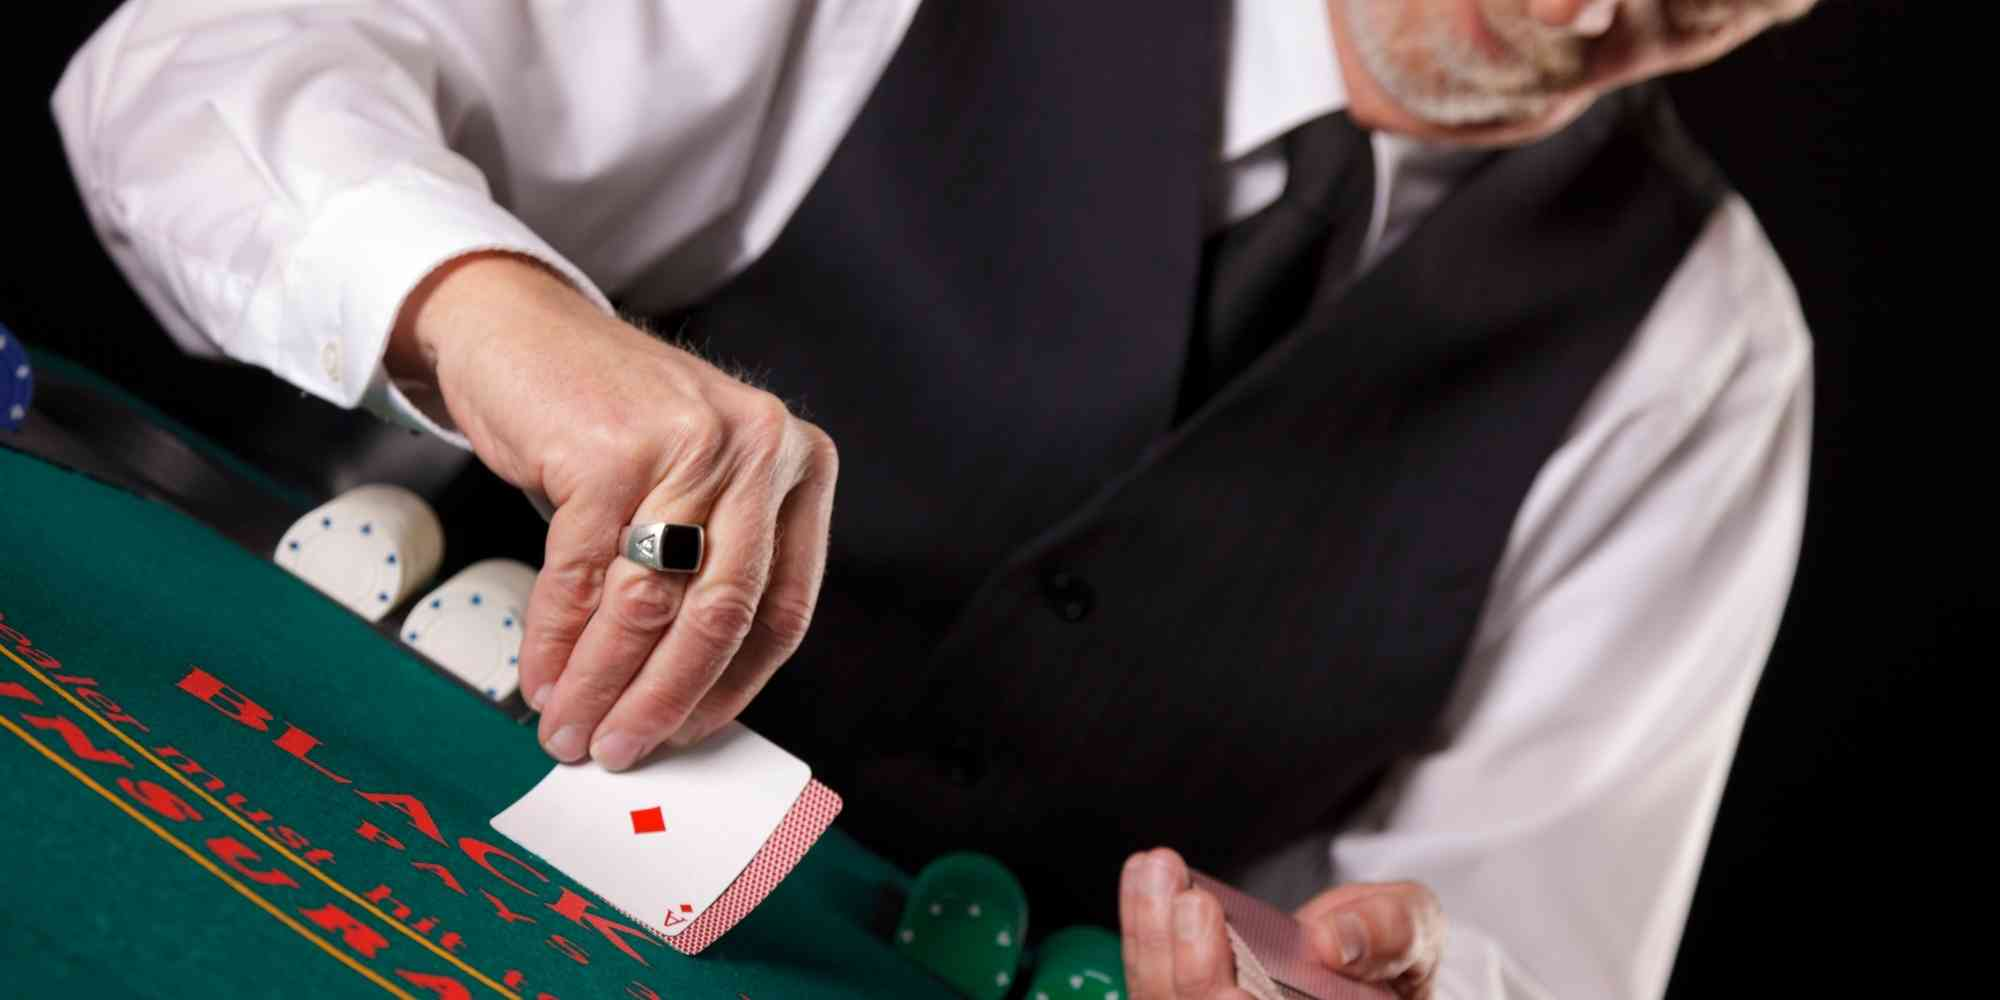 Tipping Casino Dealers – Why, How Much & Do They Keep It All?